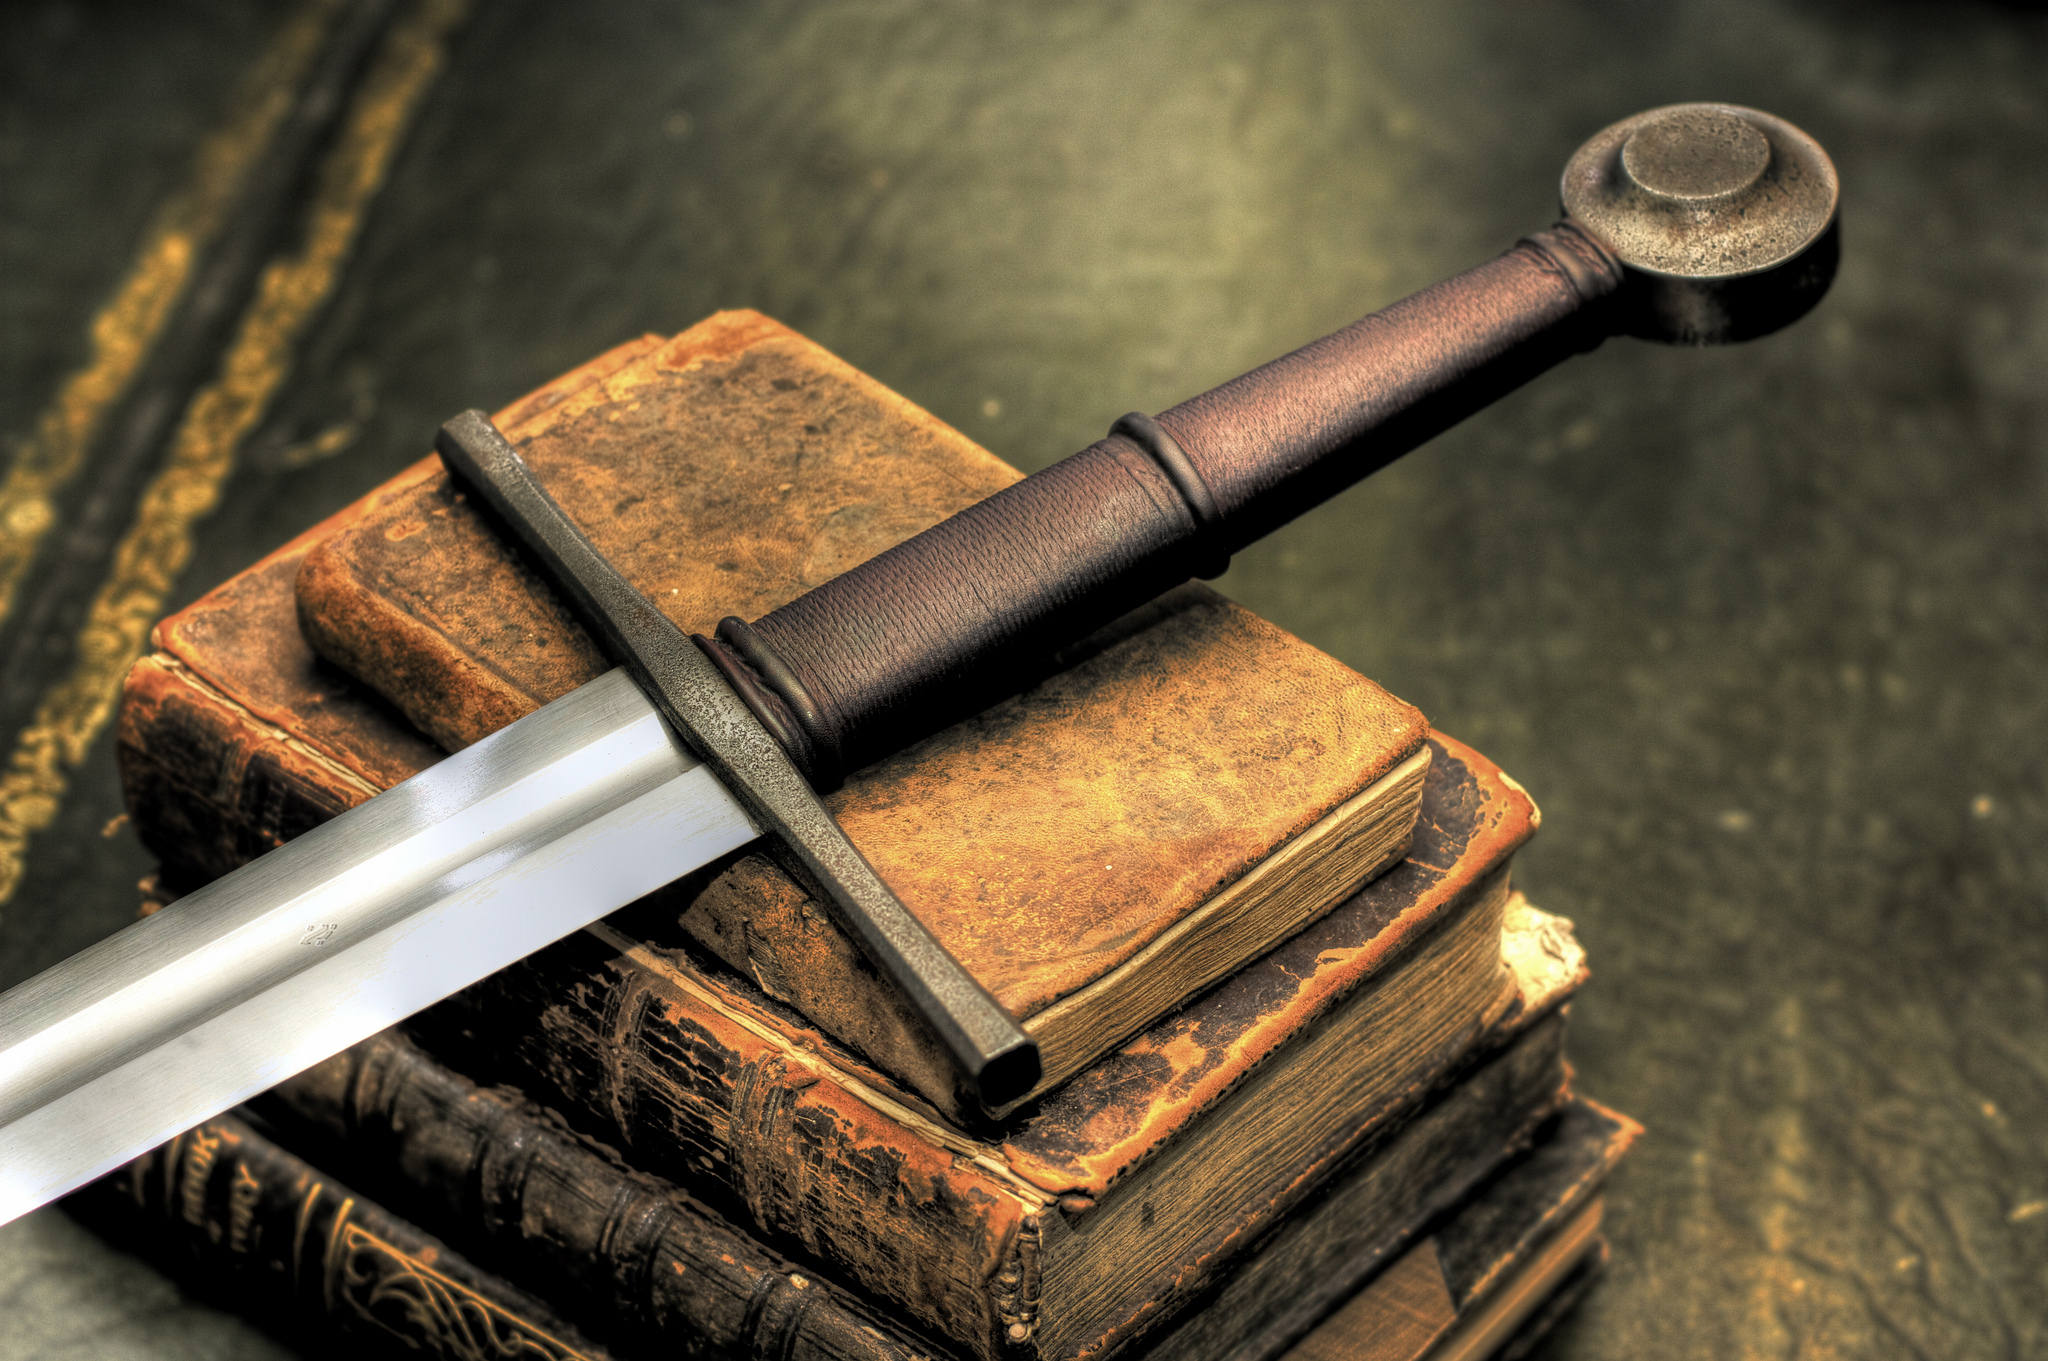 Sword and Books